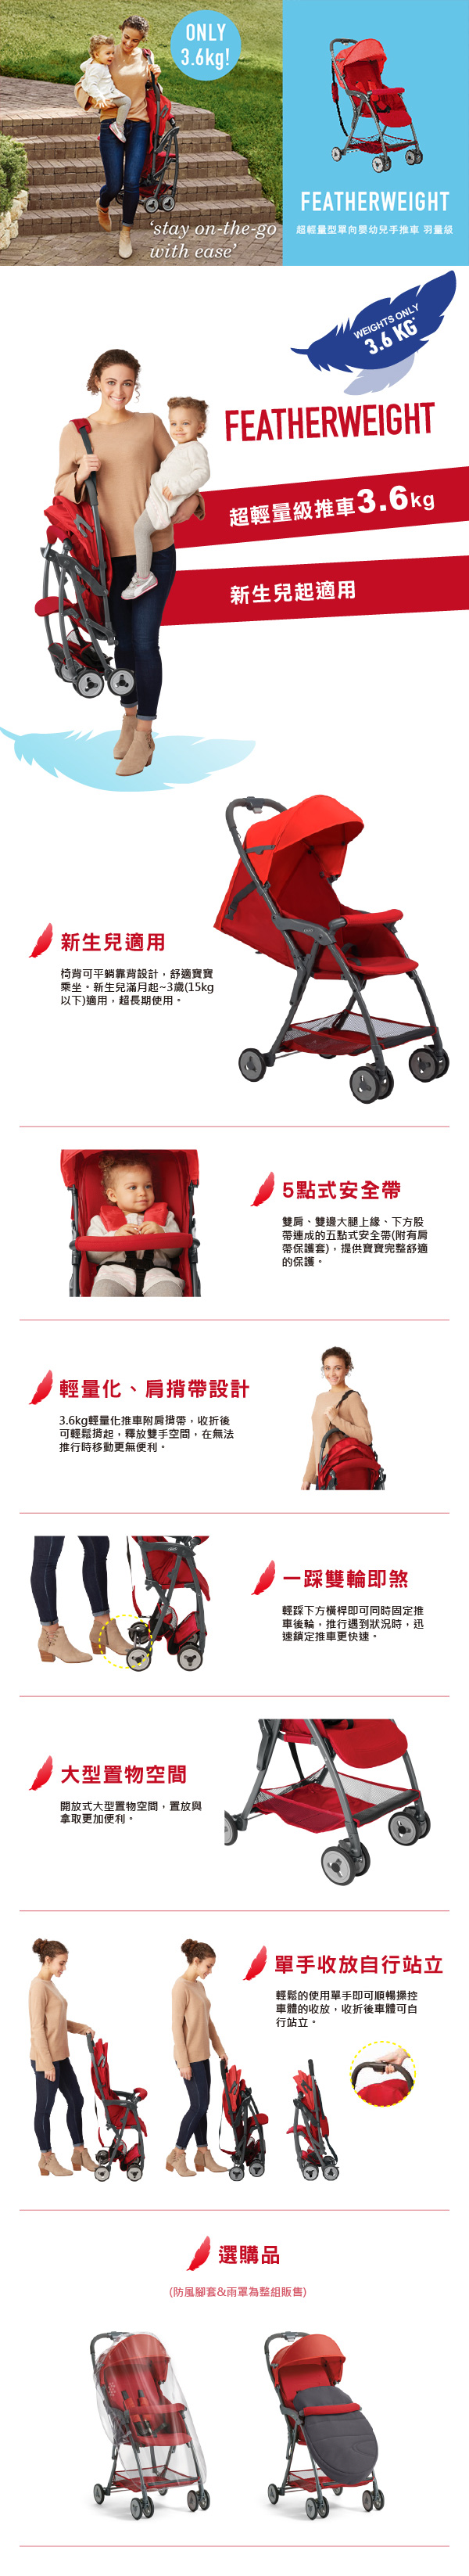 graco-Featherweight-info01